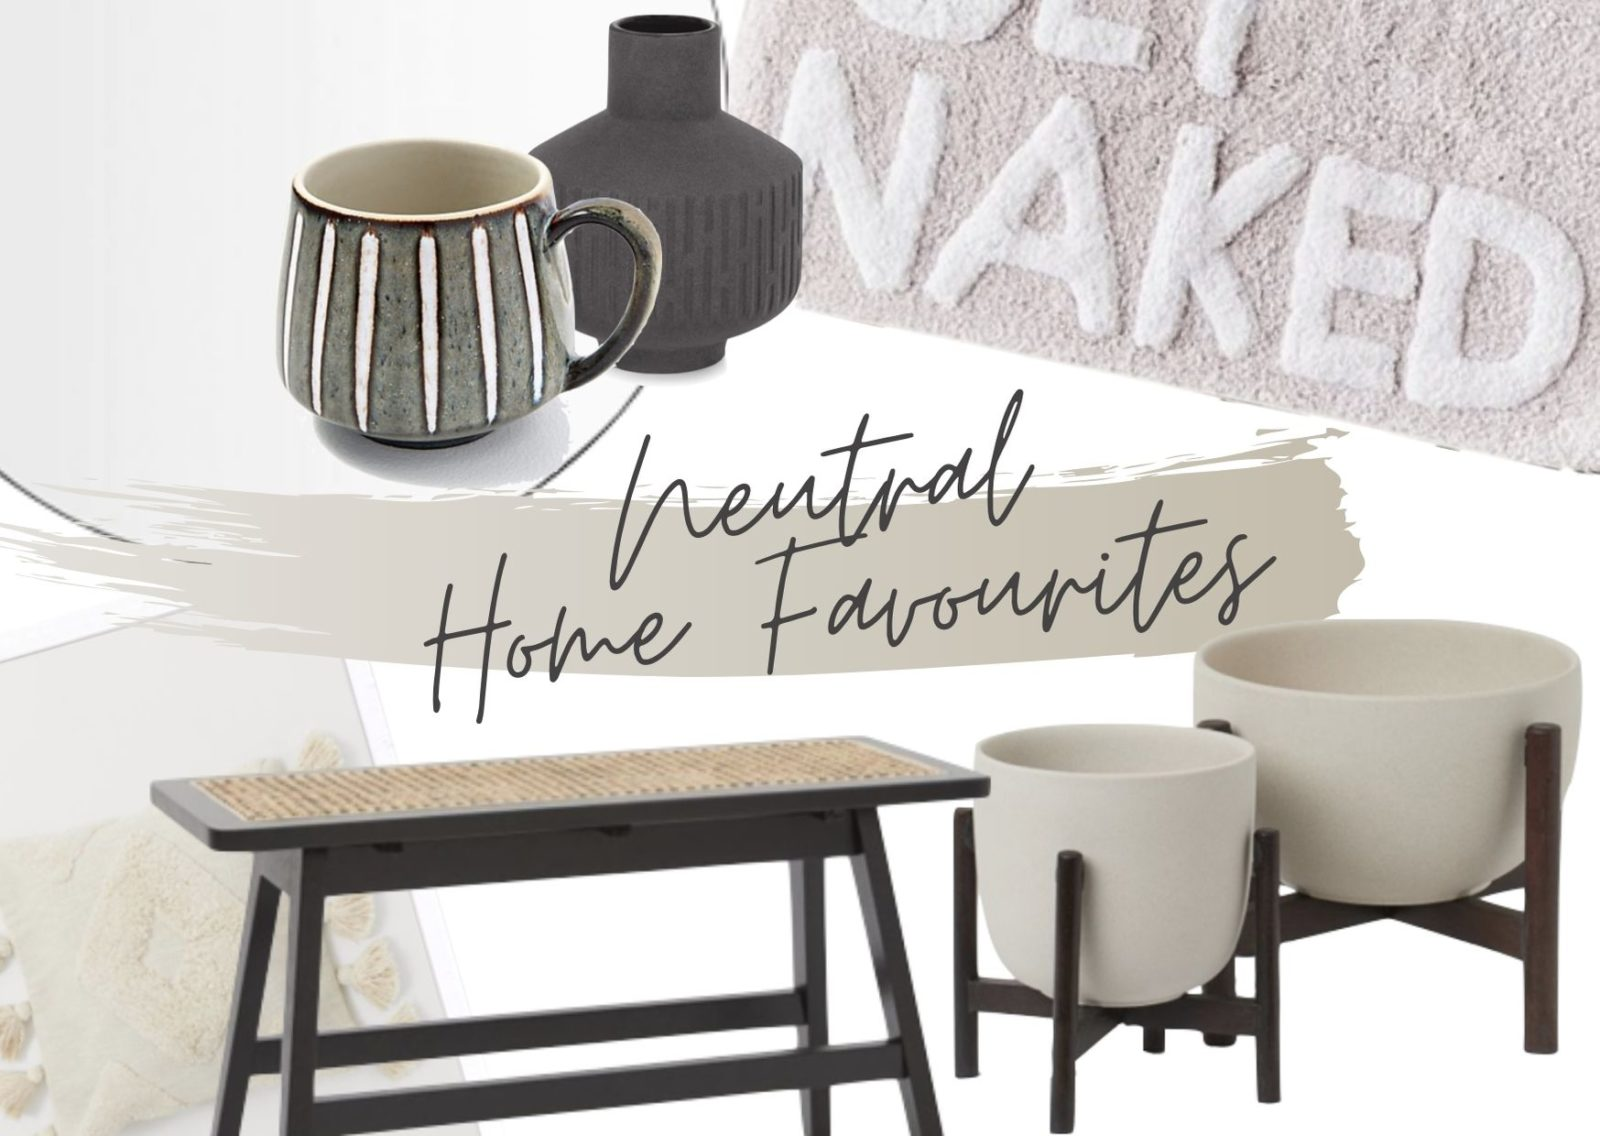 10 Neutral Home Favourites